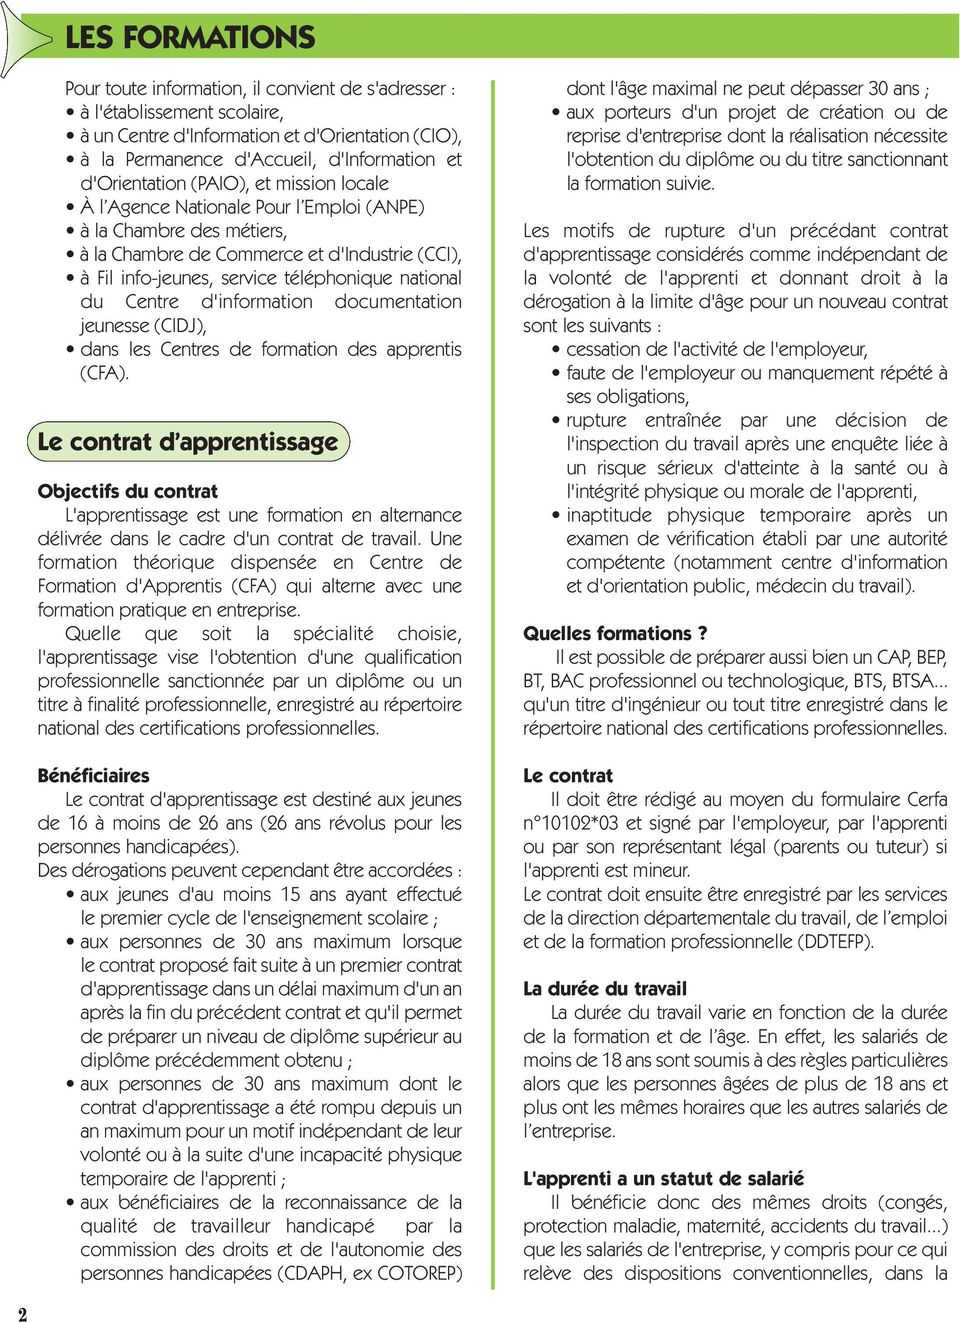 national du Centre d'information documentation jeunesse (CIDJ), dans les Centres de formation des apprentis (CFA).